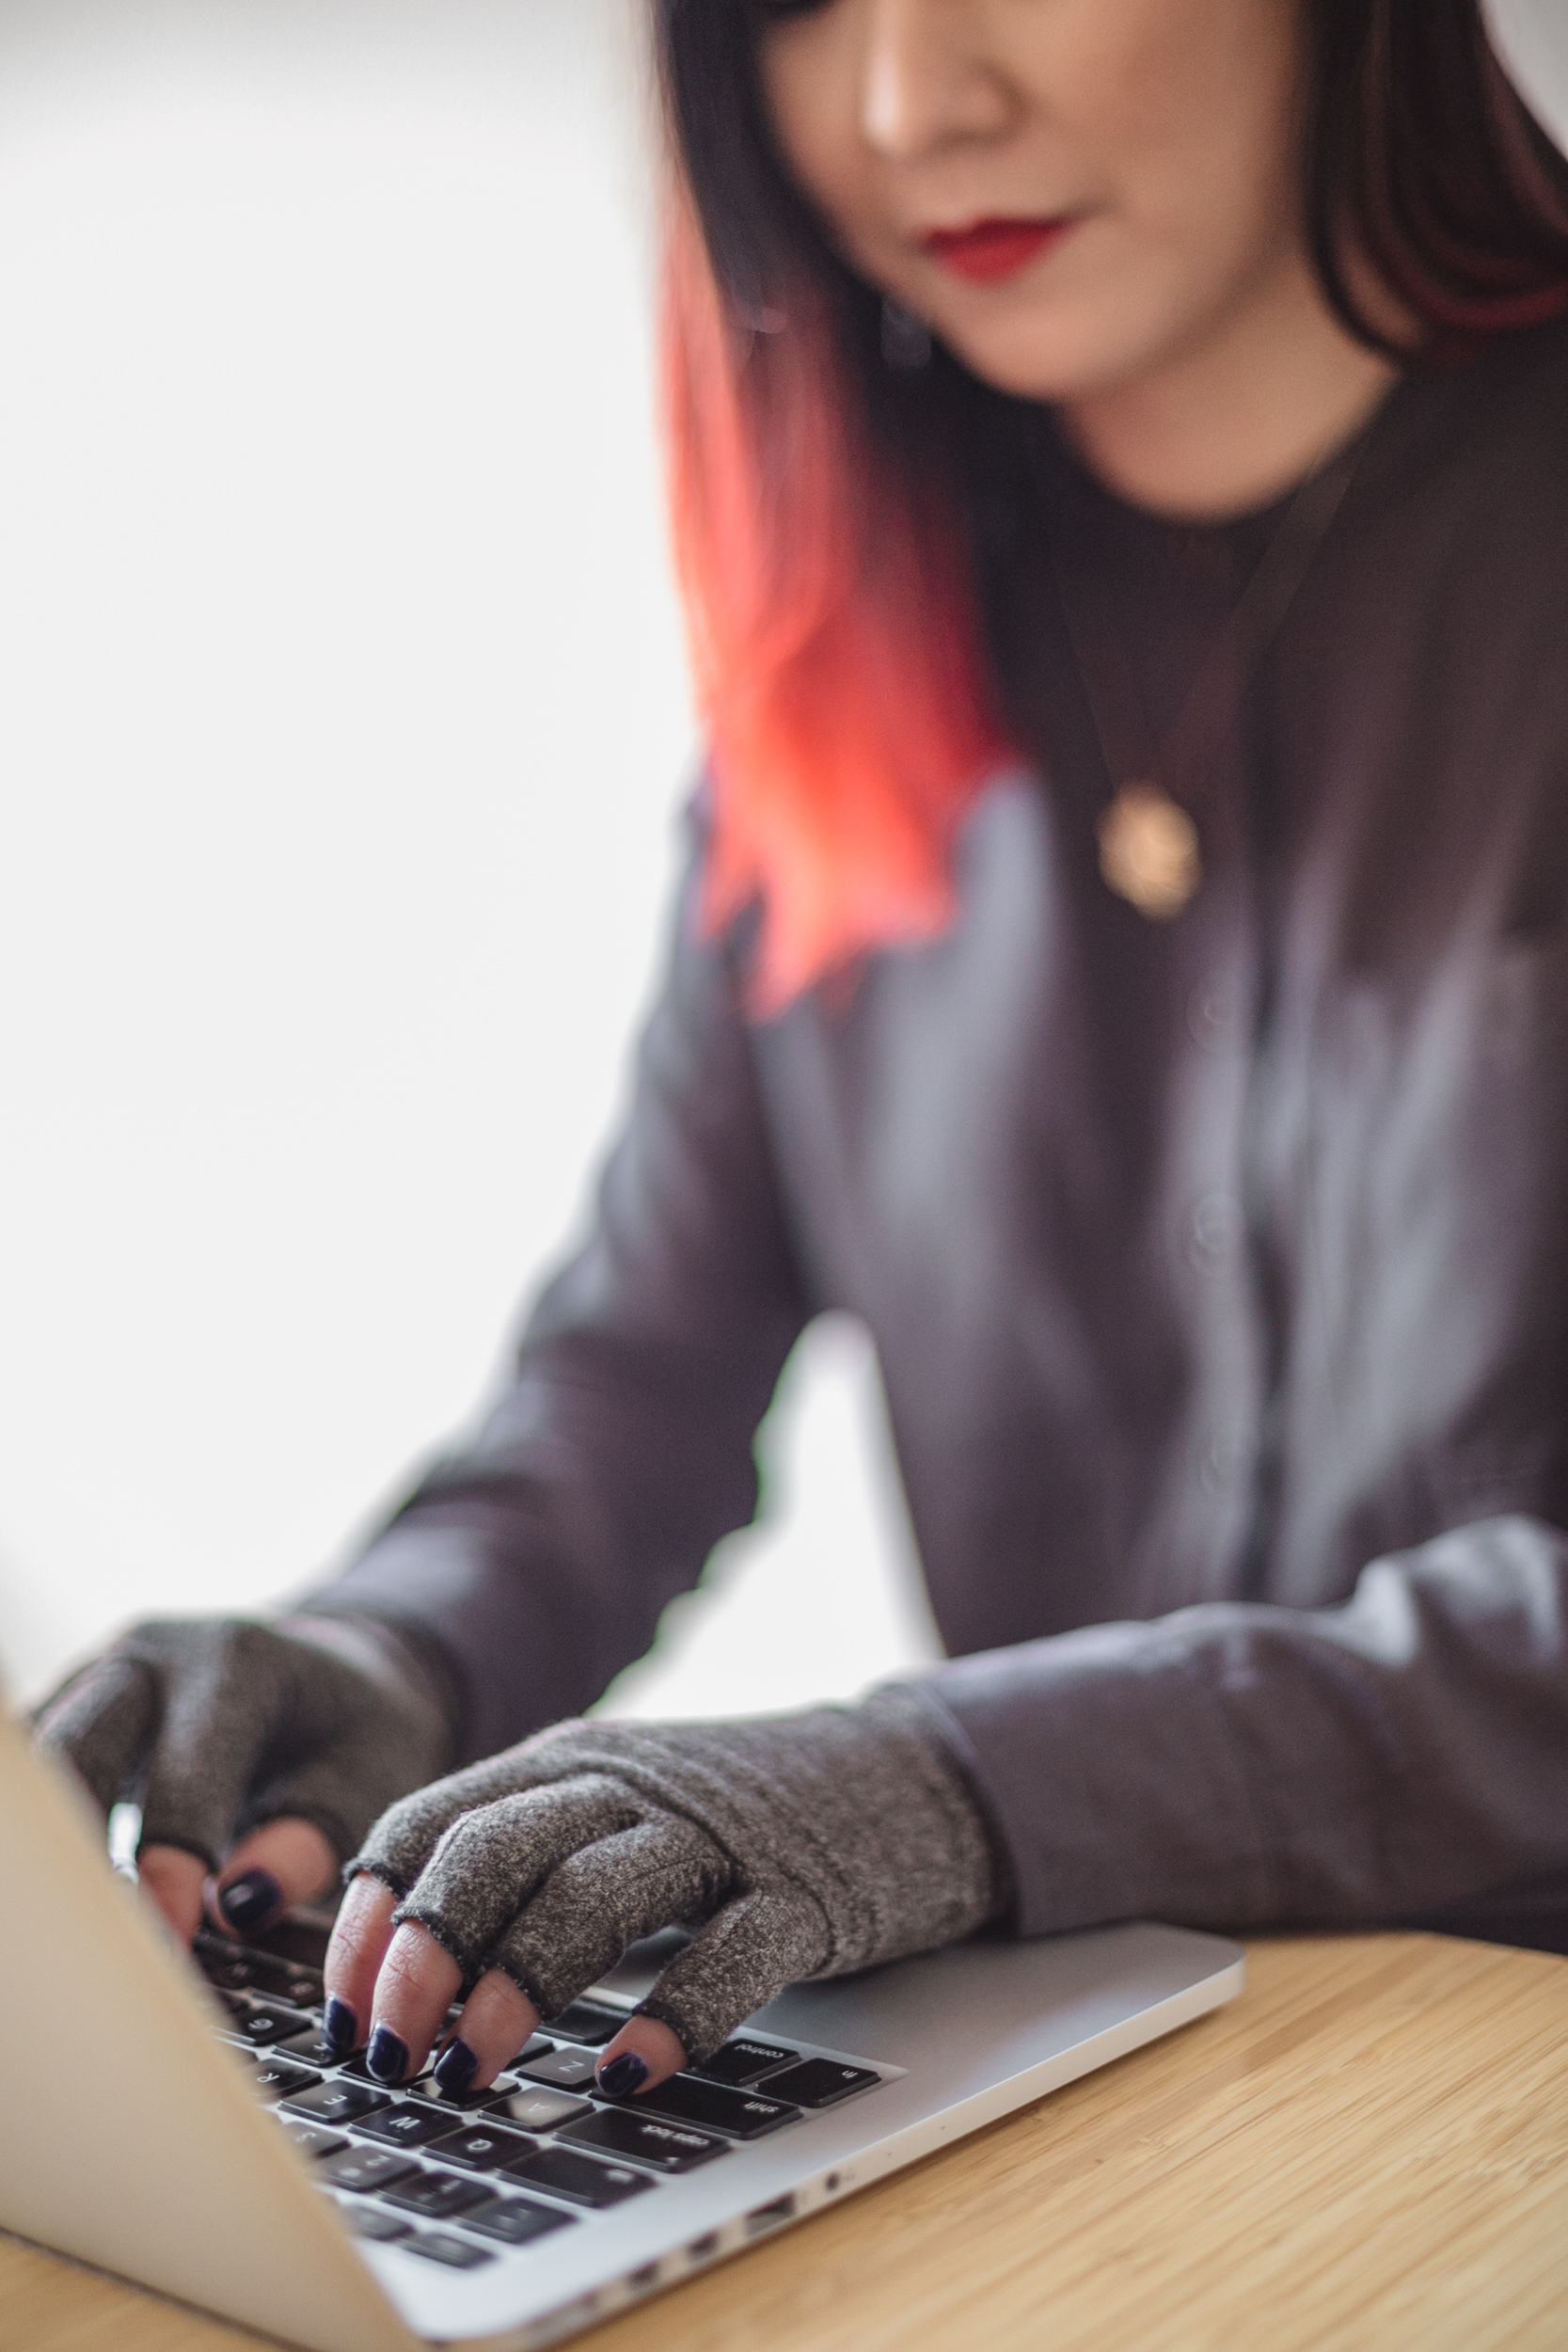 An Asian disabled woman types on a laptop while wearing compression gloves. The hands and keyboard are the focal point.